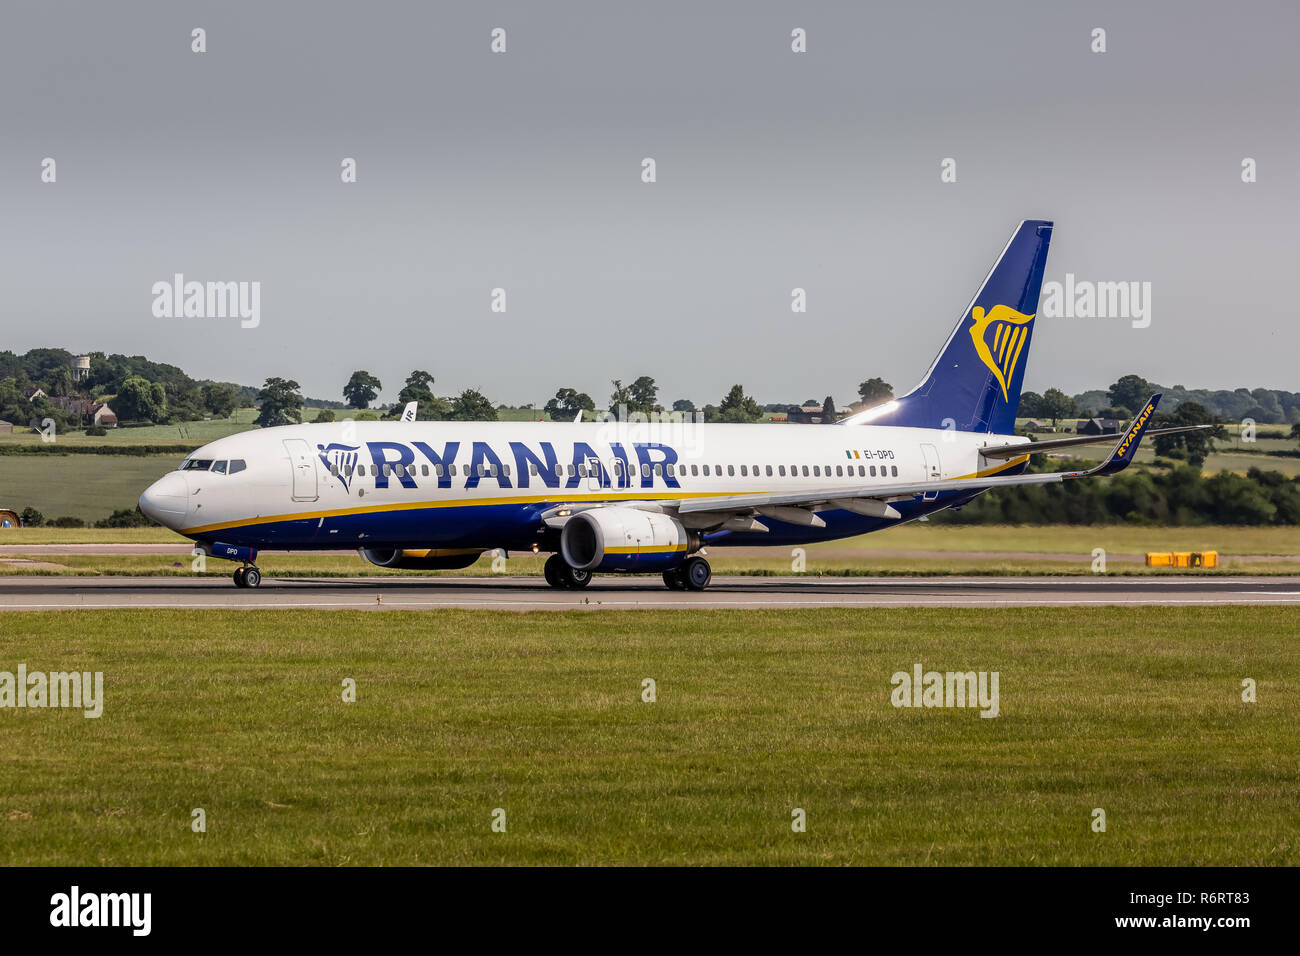 A Ryanair Boeing 737-8AS airliner, registration EI-DPD, taking off from London Luton Airport in England. Stock Photo